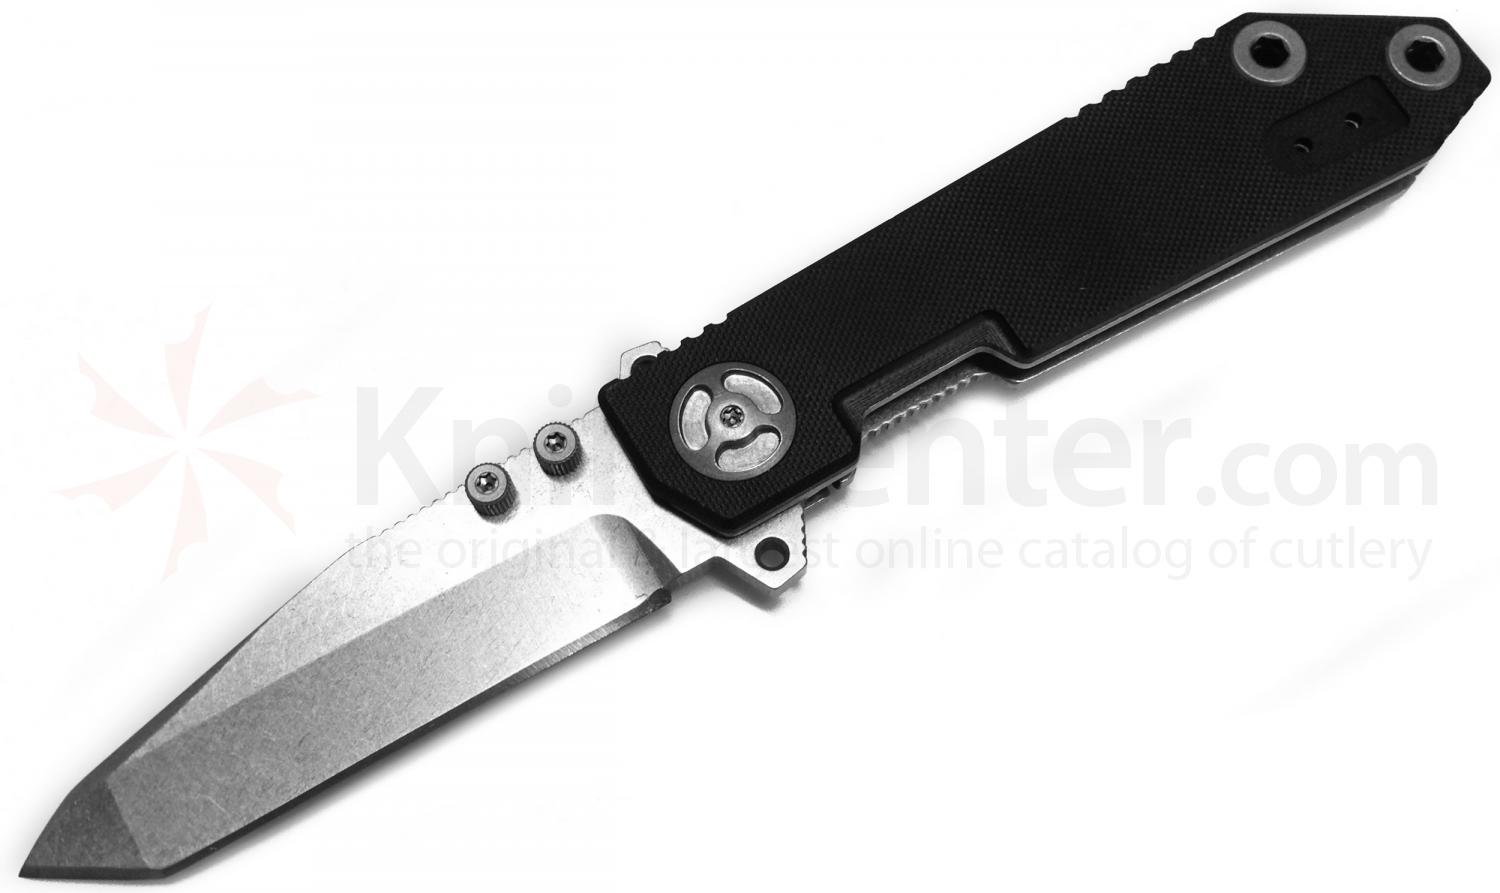 Quartermaster Knives QTRM5TR QTR-8 Pre-Production John Quayle  inchHiggins inch III 3.5 inch Tanto Blade, G10 Handle